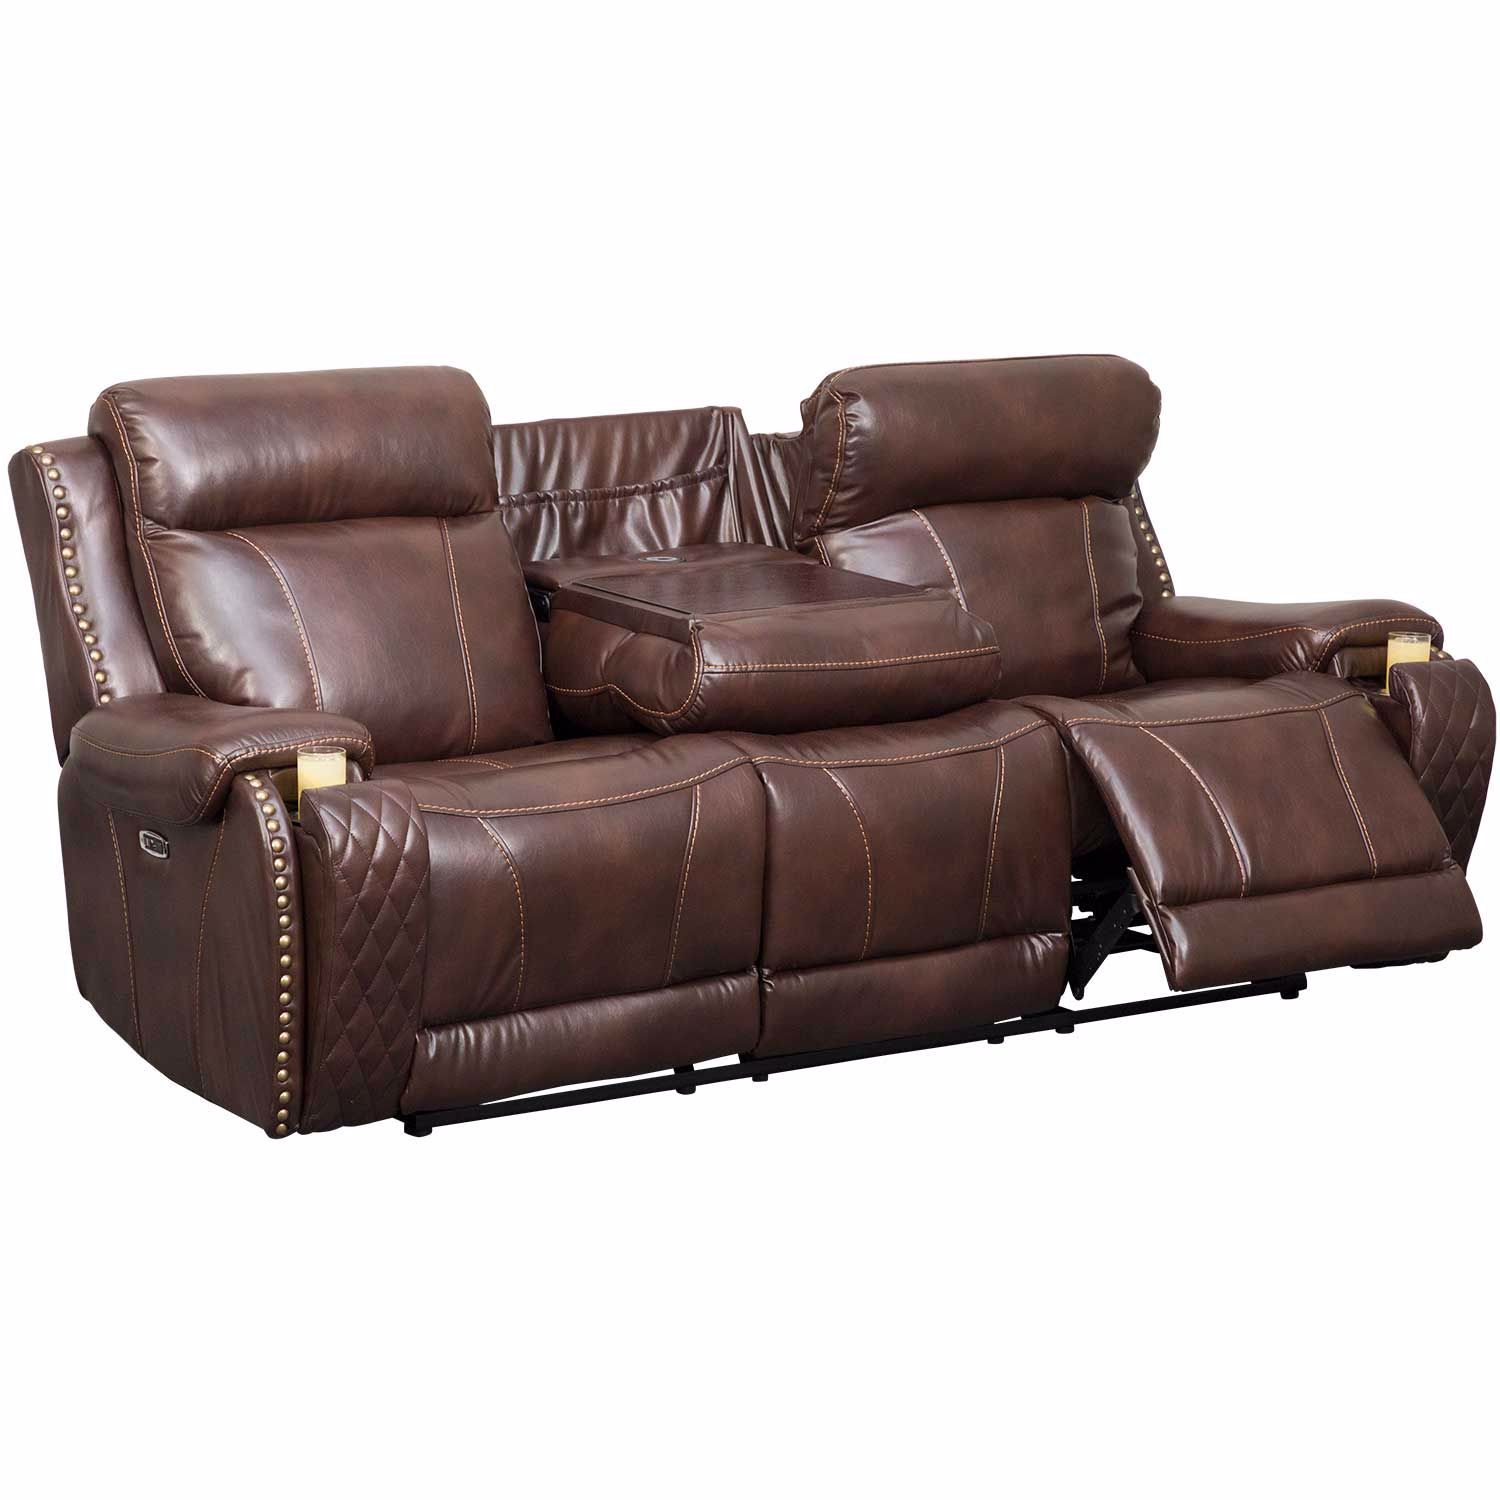 Picture of Gia Power Recline Sofa with Adjustable Headrest